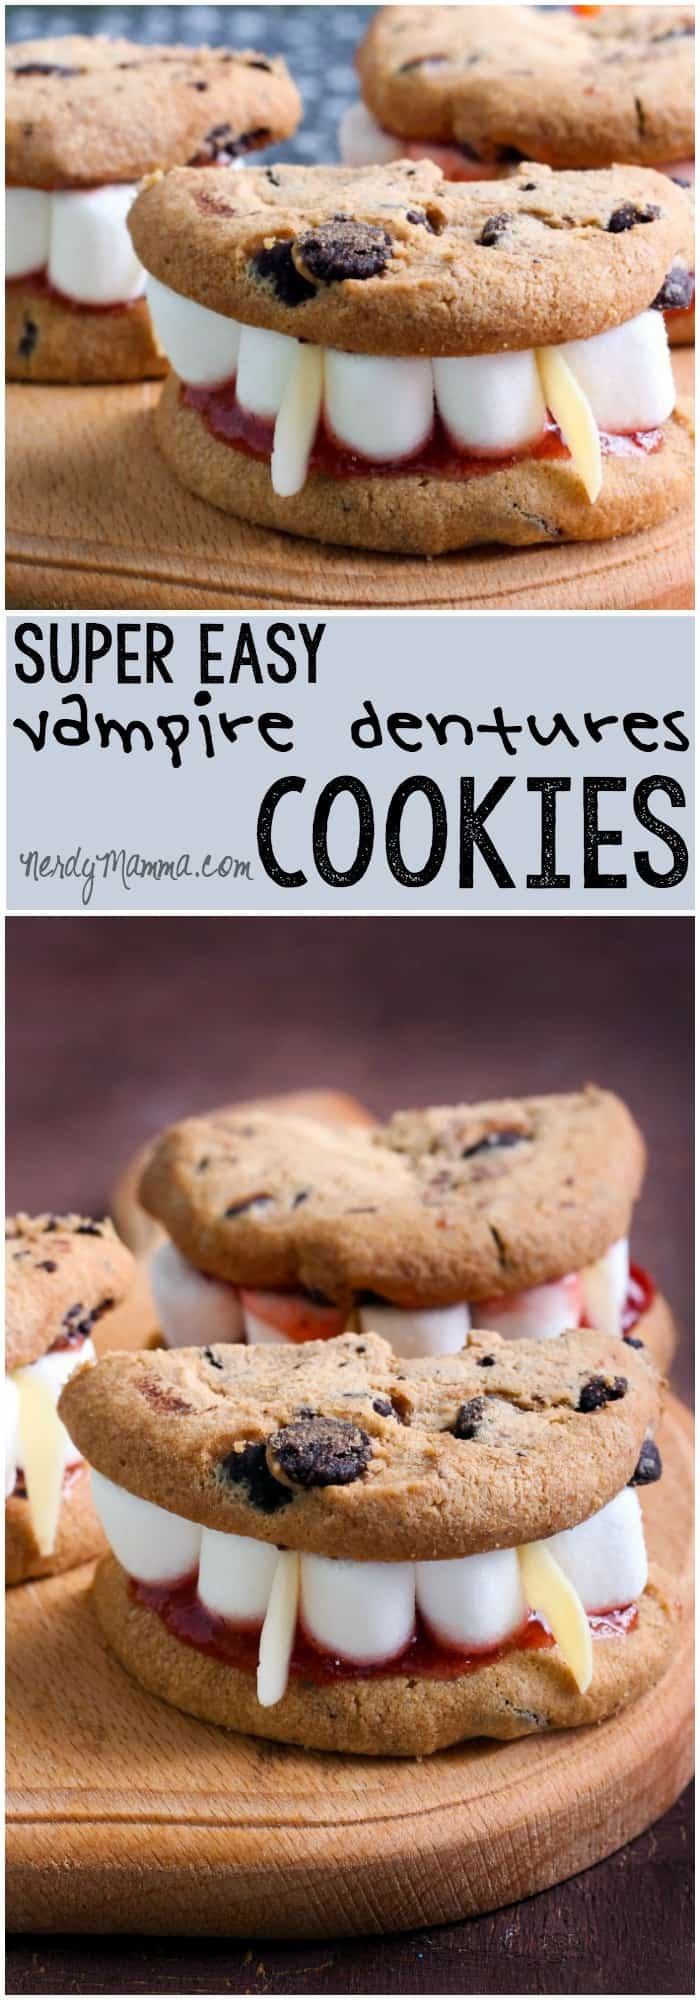 I had my teenager help me make thesedracula's dentures cookies. They were so easy and fun--he wants to bring them to his class on Friday...LOL!